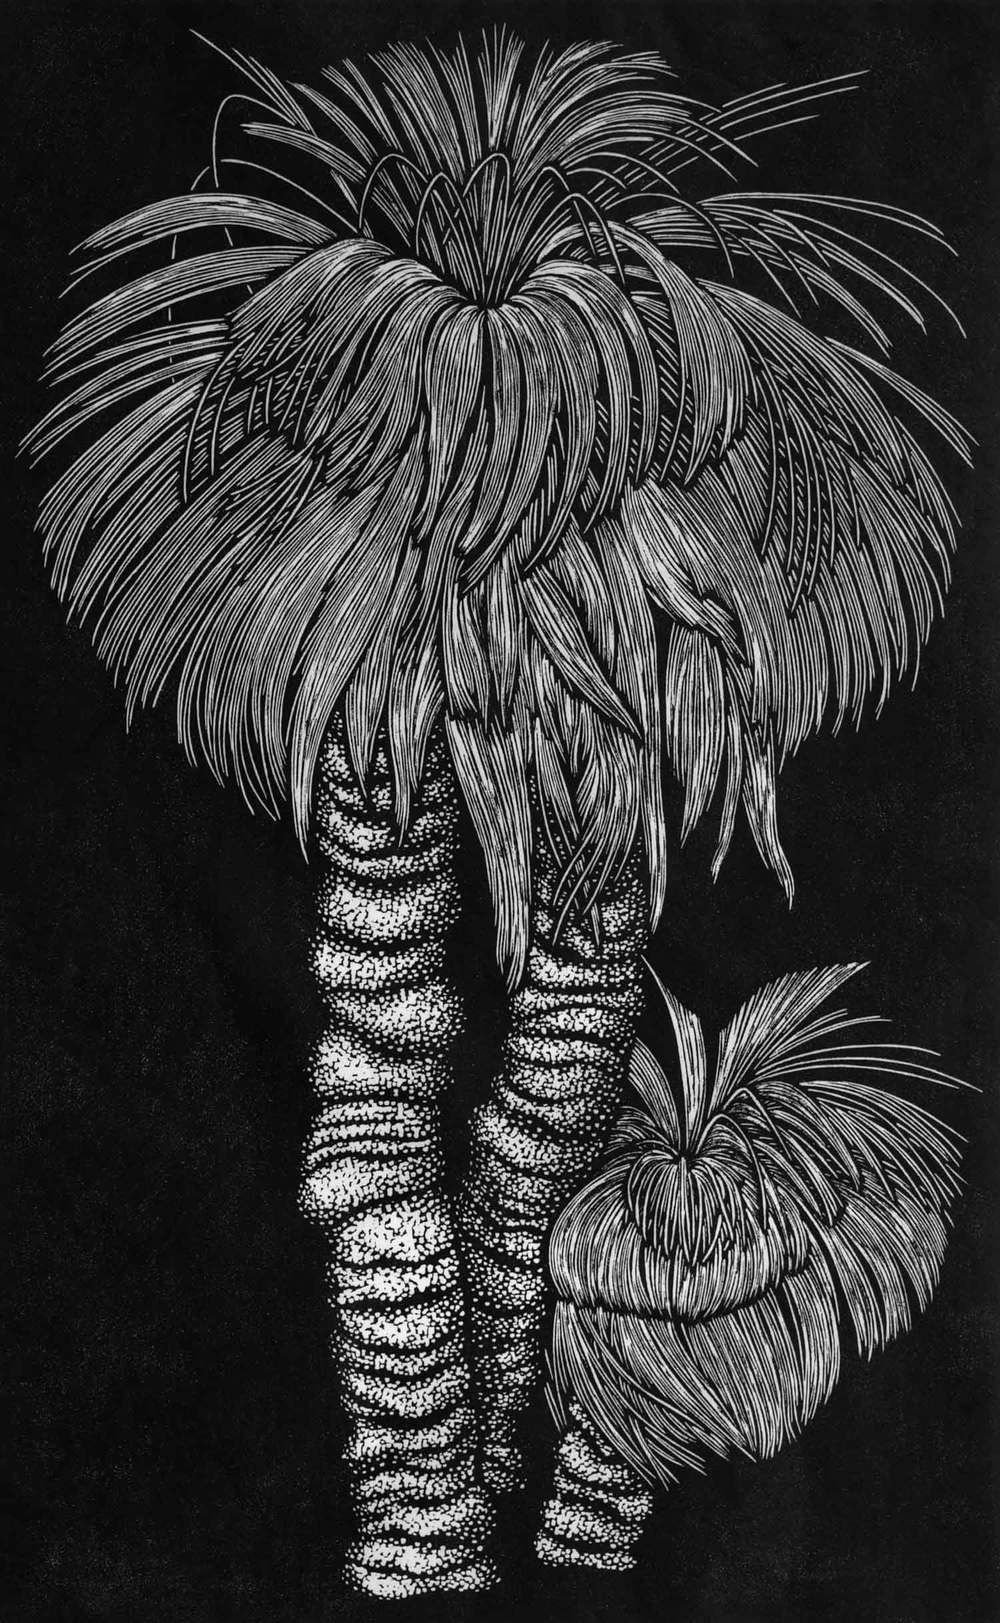 THREE GRASS TREES  69 X 43 CM    EDITION OF 50  LINOCUT ON HANDMADE JAPANESE PAPER  $1,250